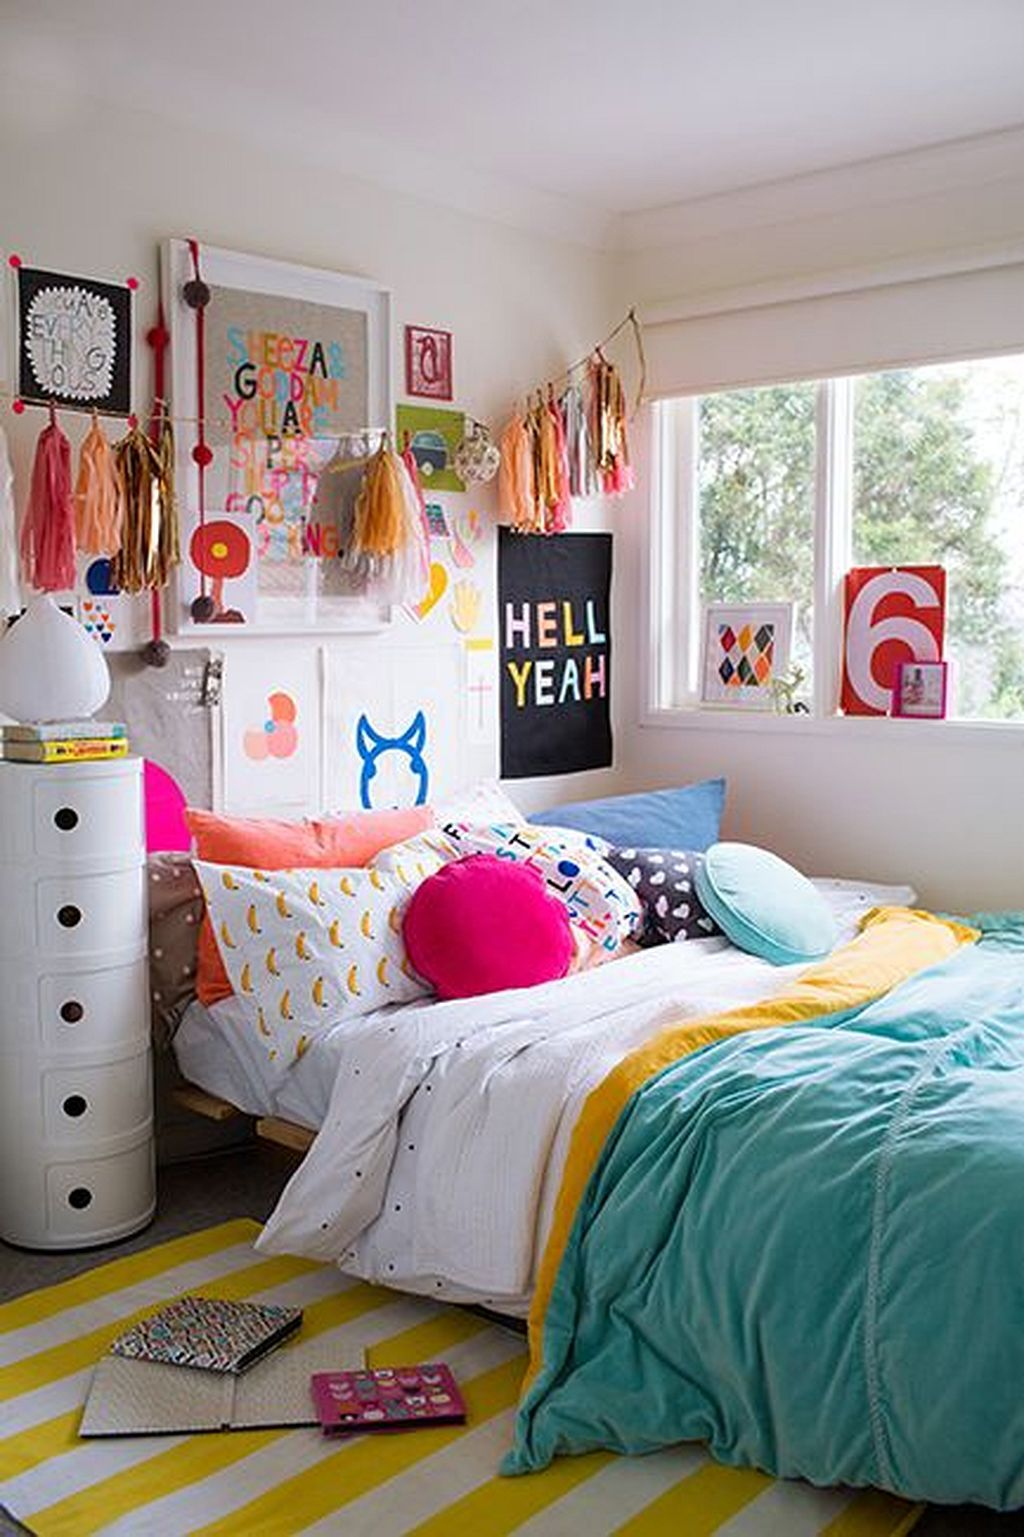 70 Teen Girl Bedroom Design Ideas Decoraciones Para Cuartos